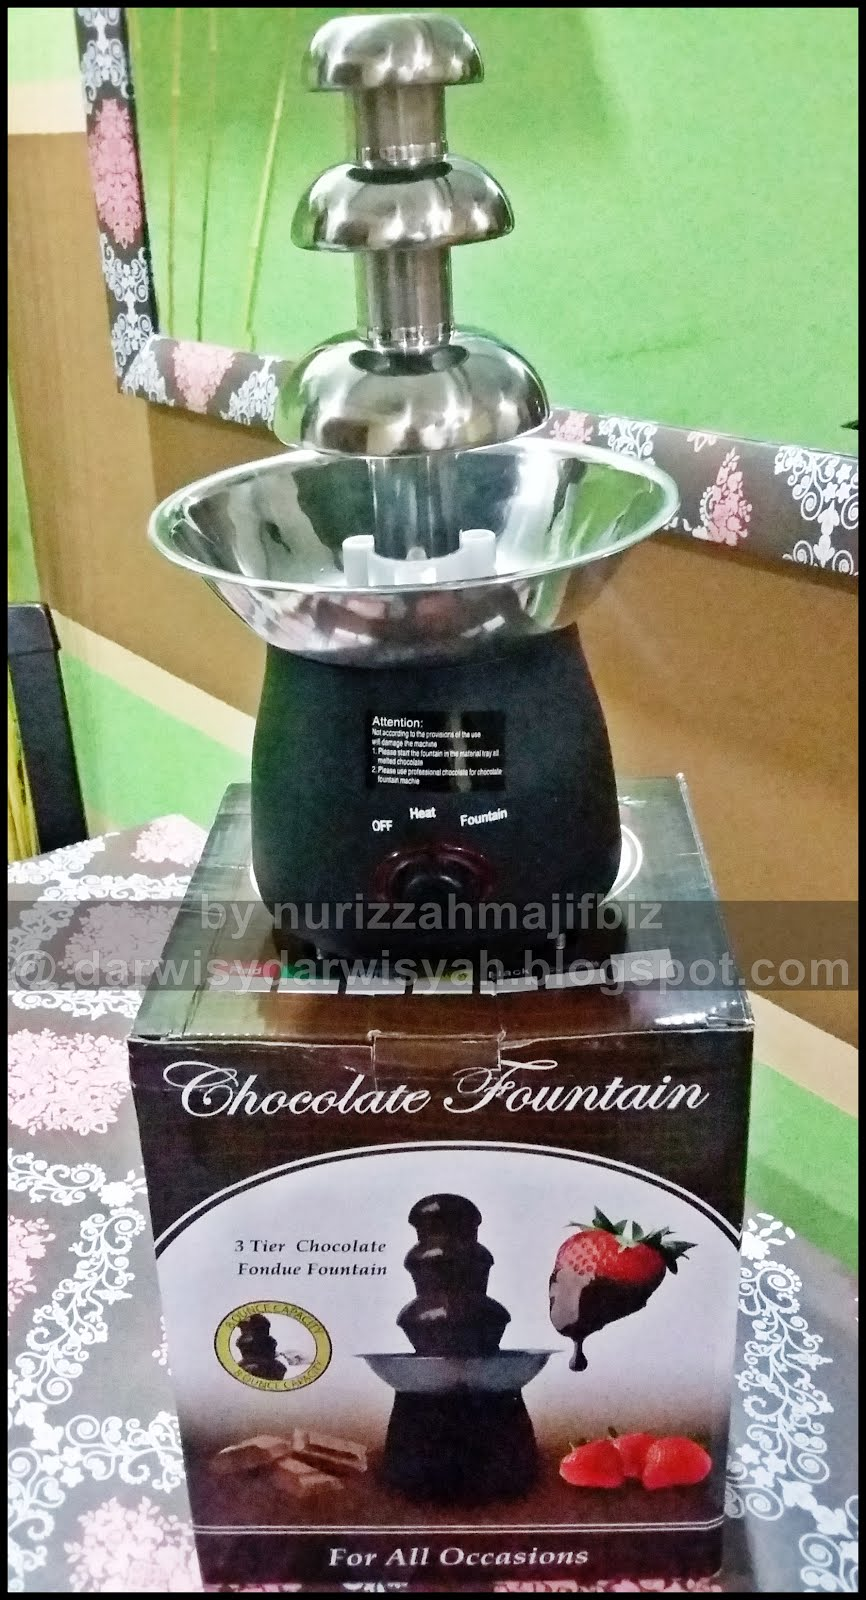 [FOR SALE] CHOCOLATE FOUNTAIN MACHINE XS SIZE FOR 500 GM